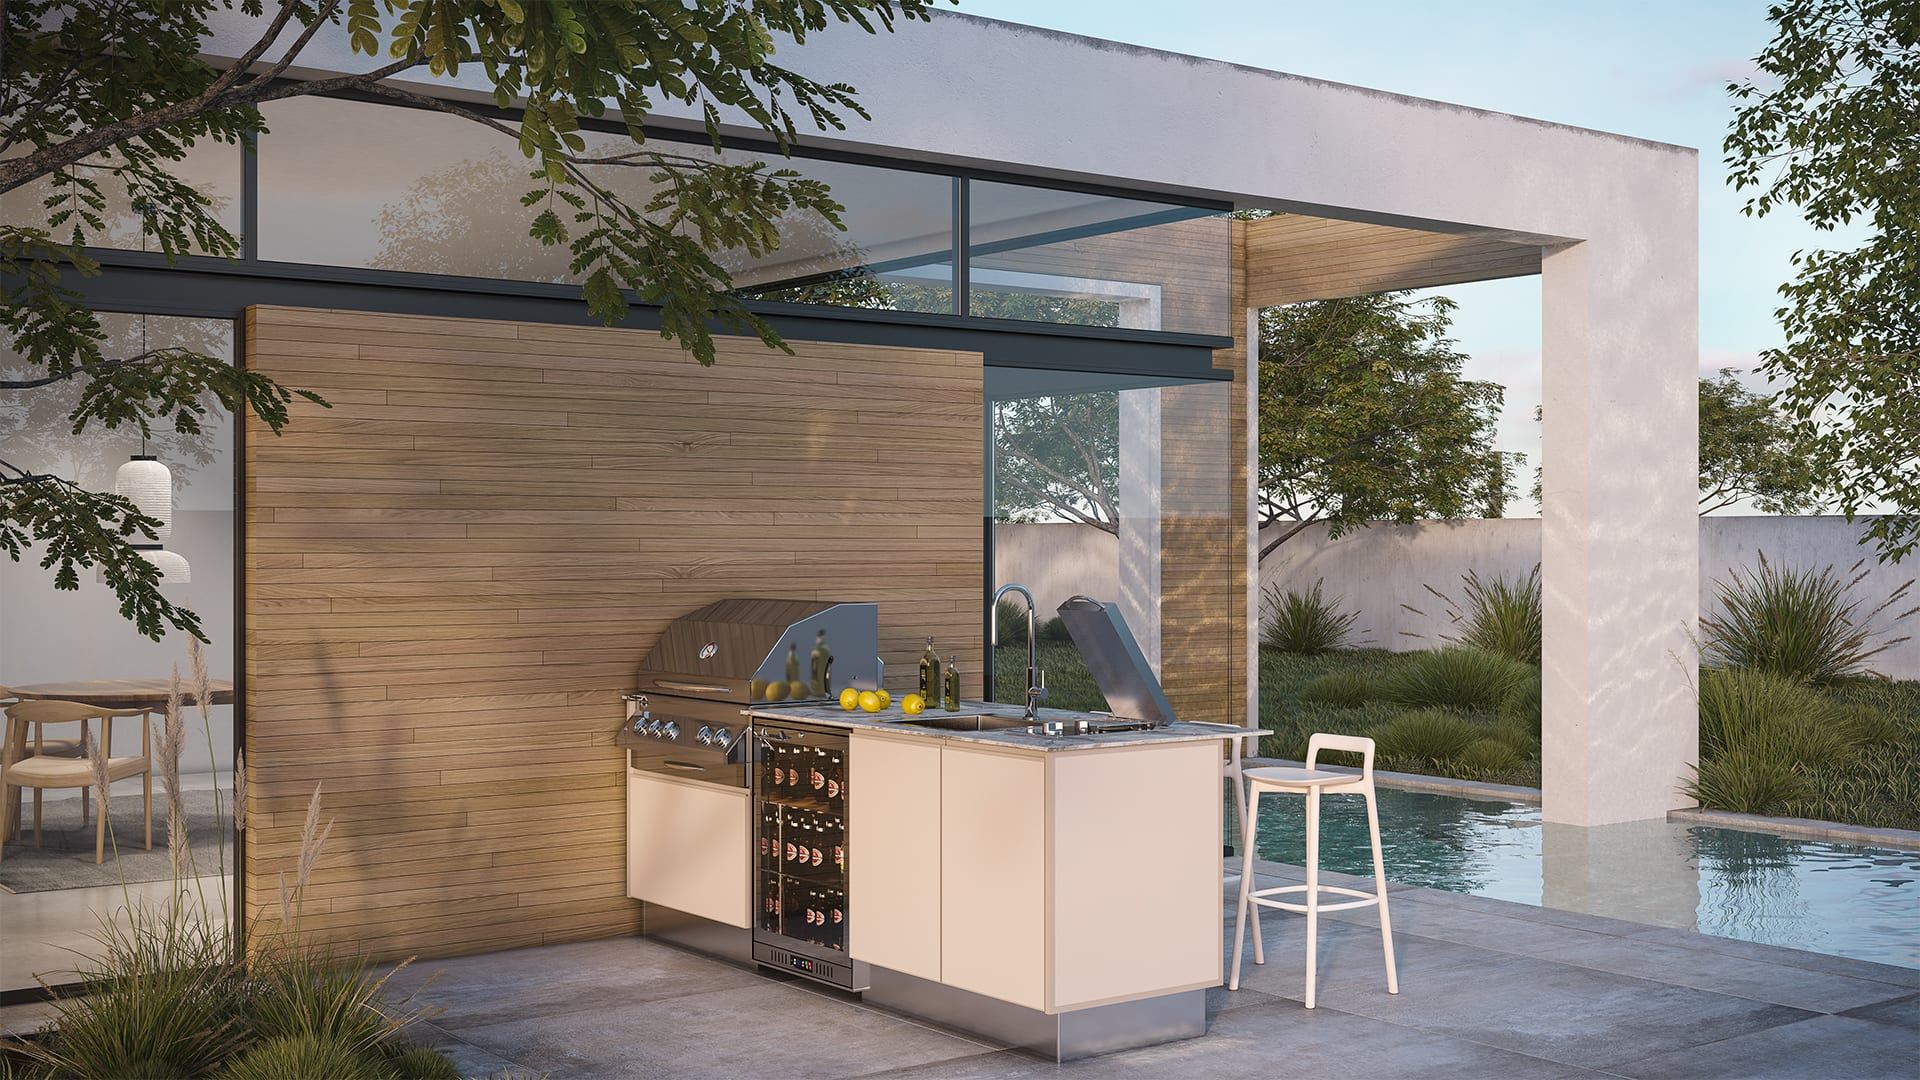 Maayan-Golan_Architectural-Visualization_product-visualization_outdoor-kitchen_alumex-by-formex_eylot-kitchen_01